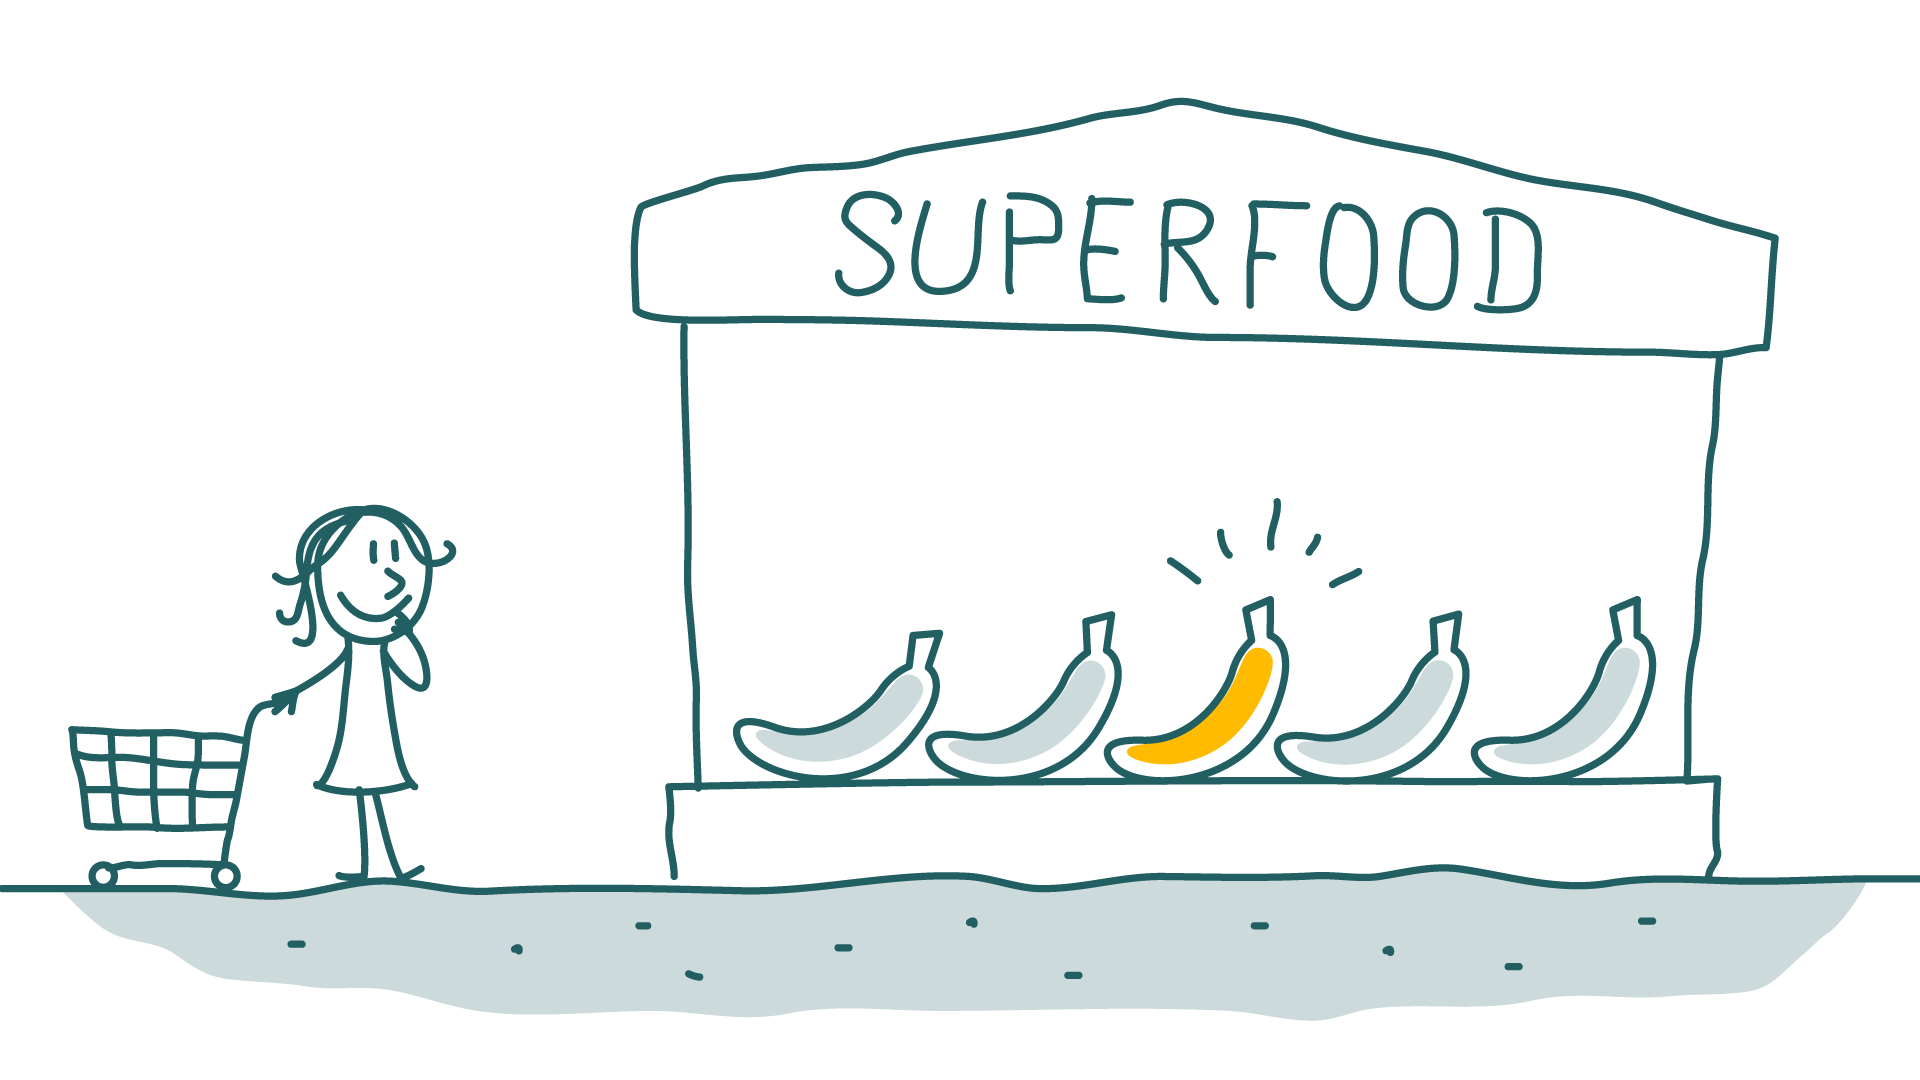 Woman wonders which superfood is really super and not only pretends to be super.